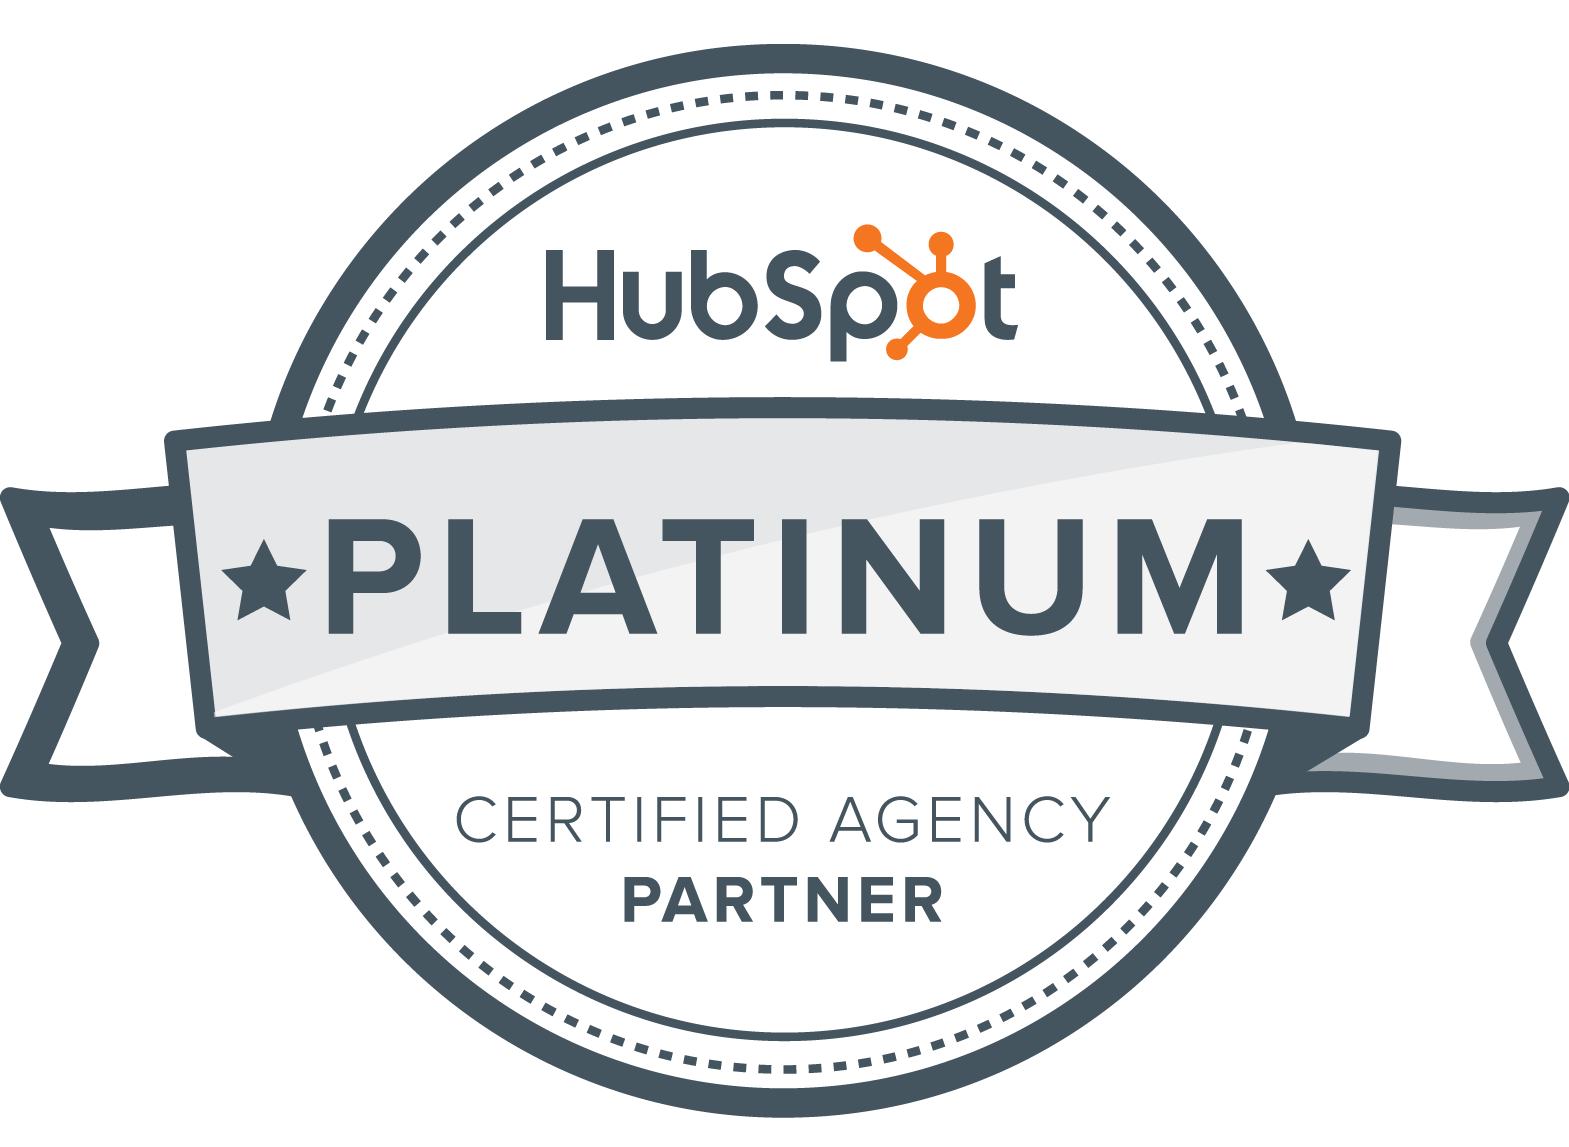 HubSpot-Platinum-Tier-Badge.png